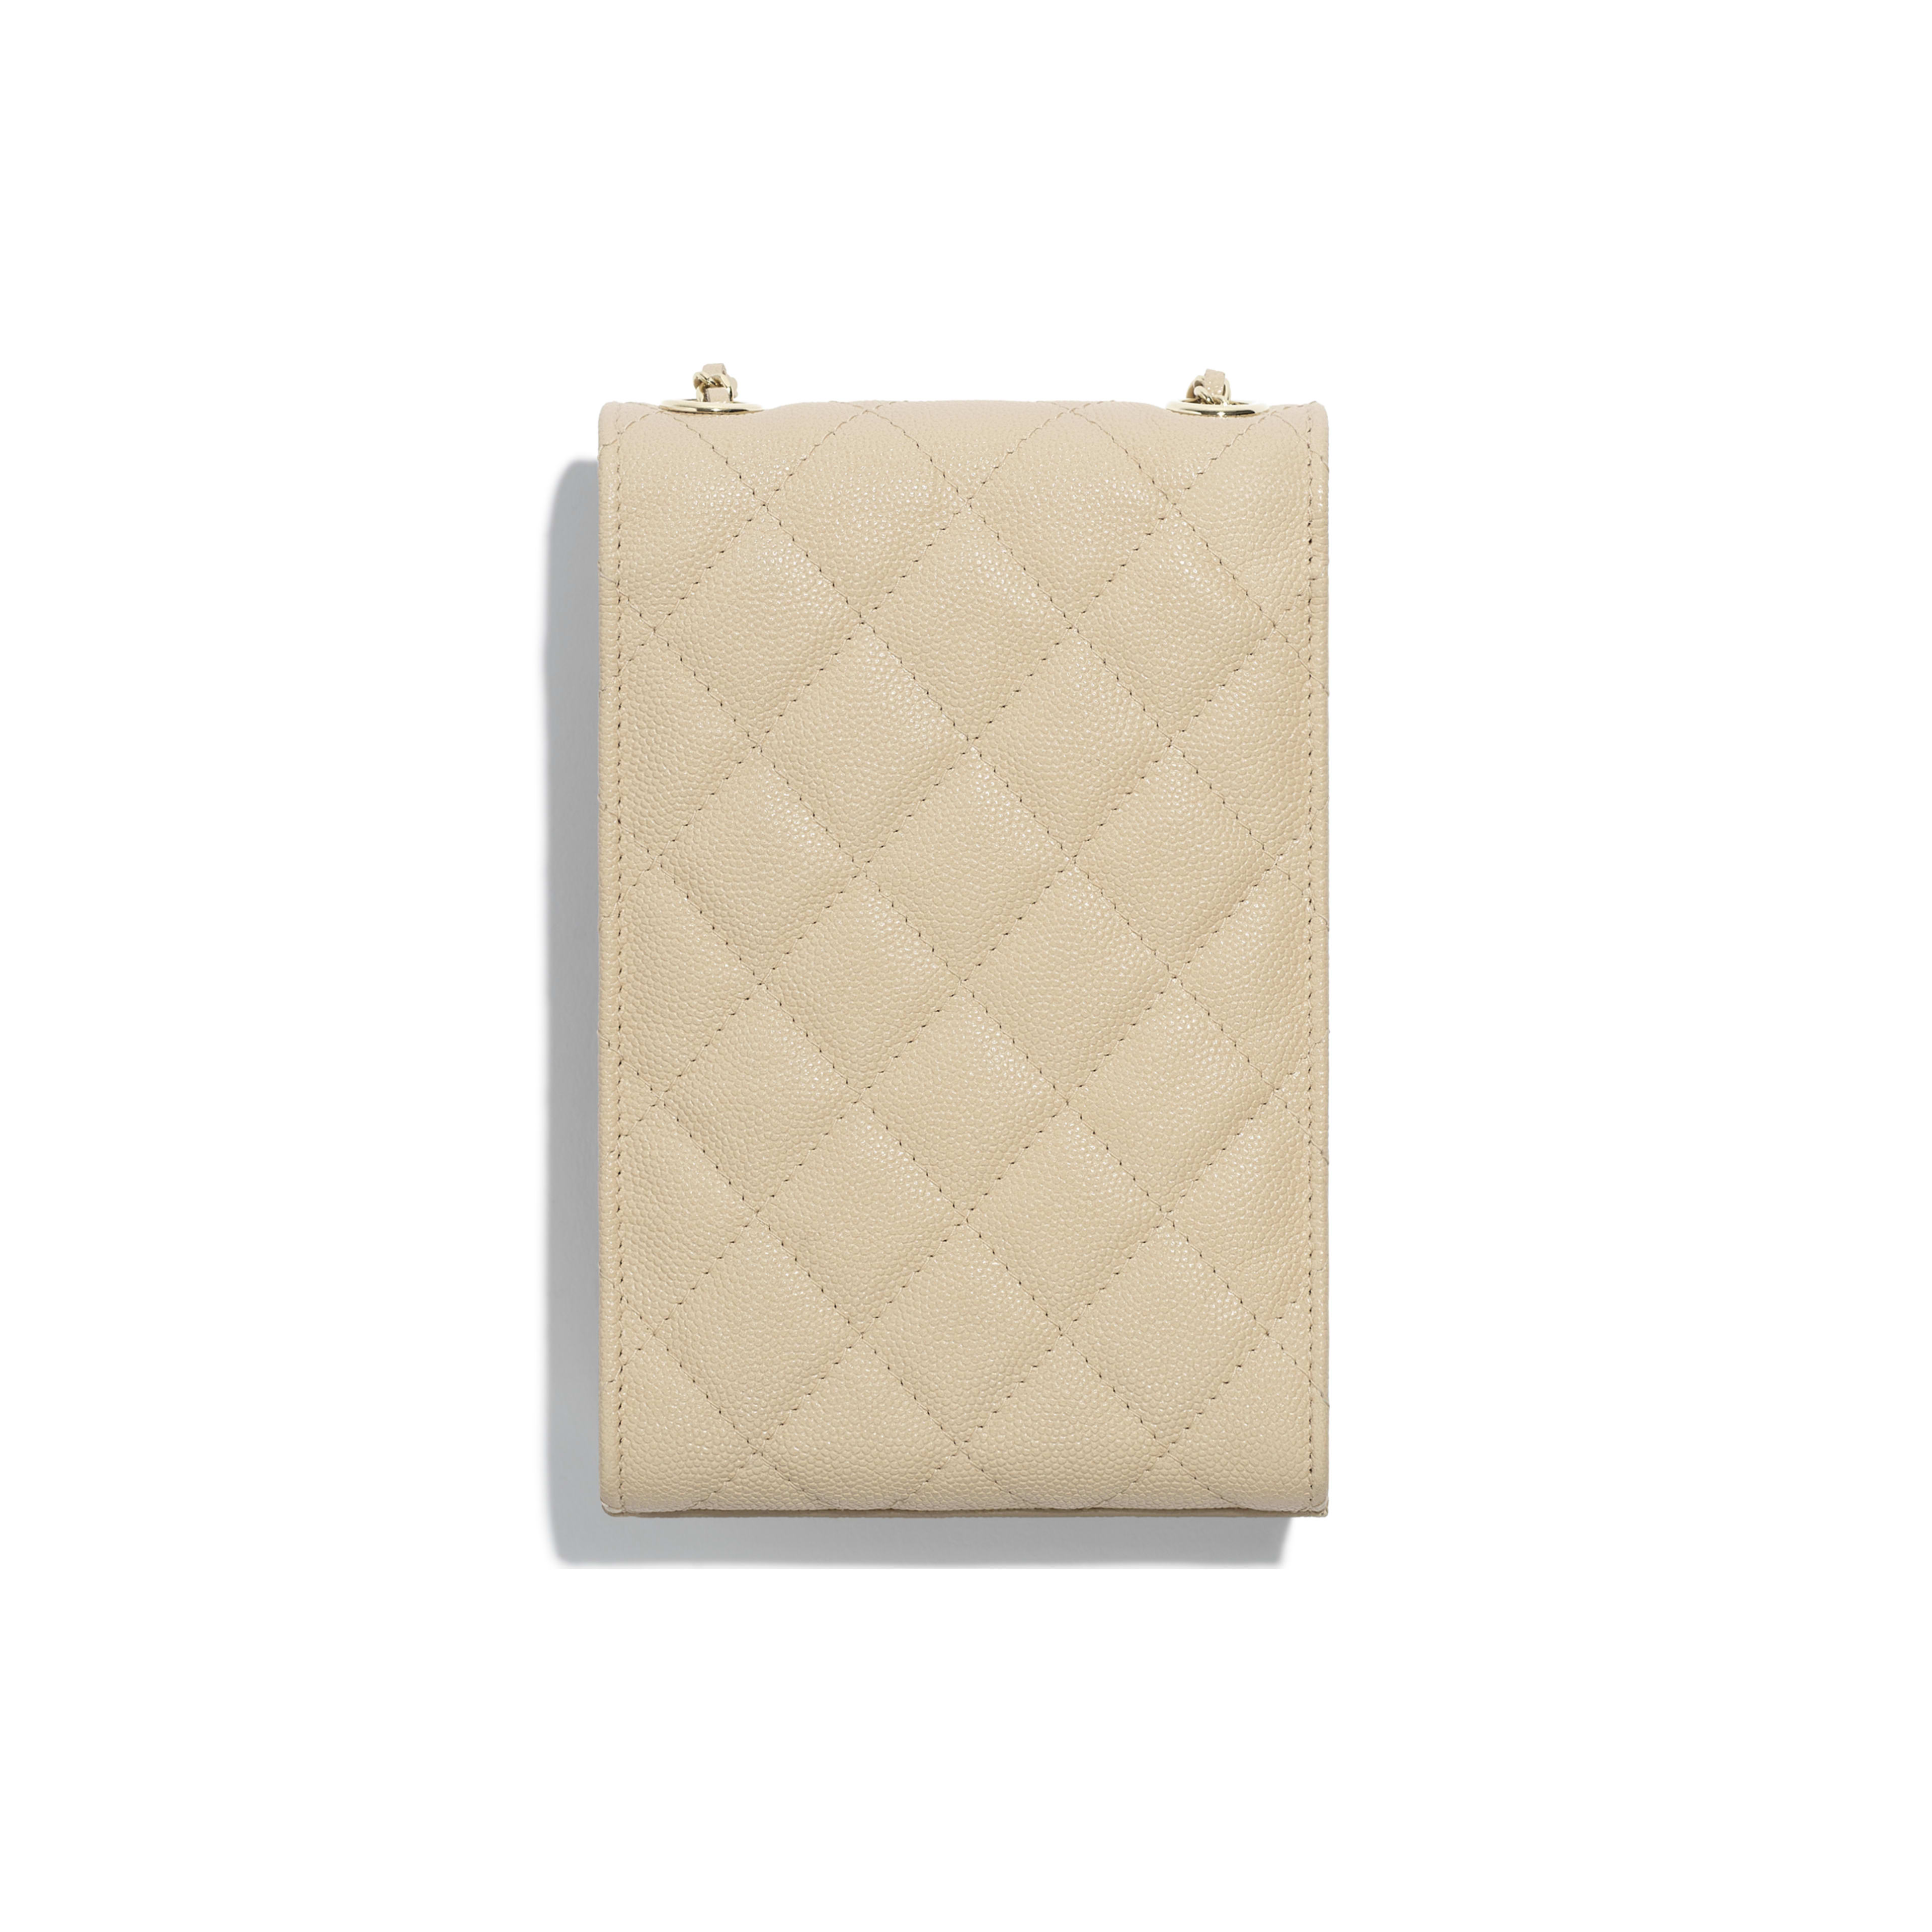 Clutch With Chain - Beige - Grained Goatskin & Gold Metal - Alternative view - see full sized version